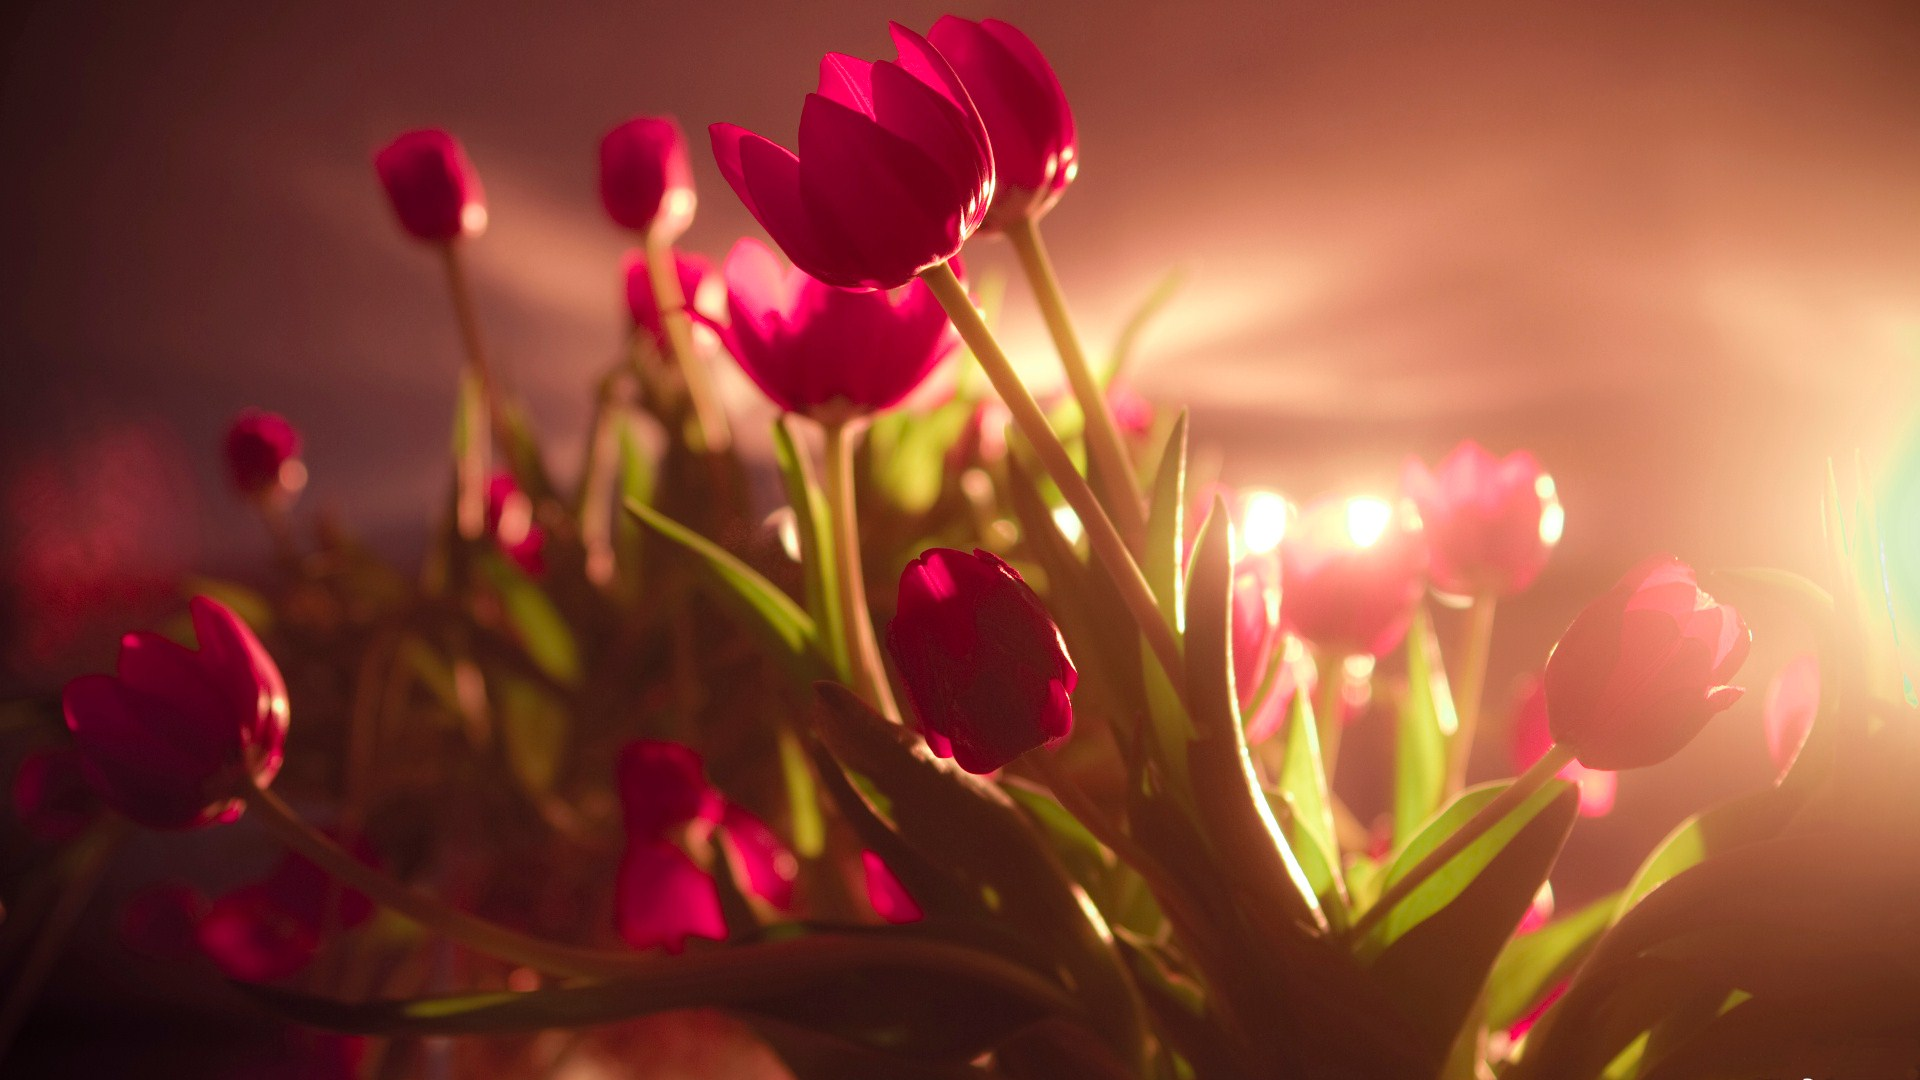 Amazing Red Flowers Wallpaper